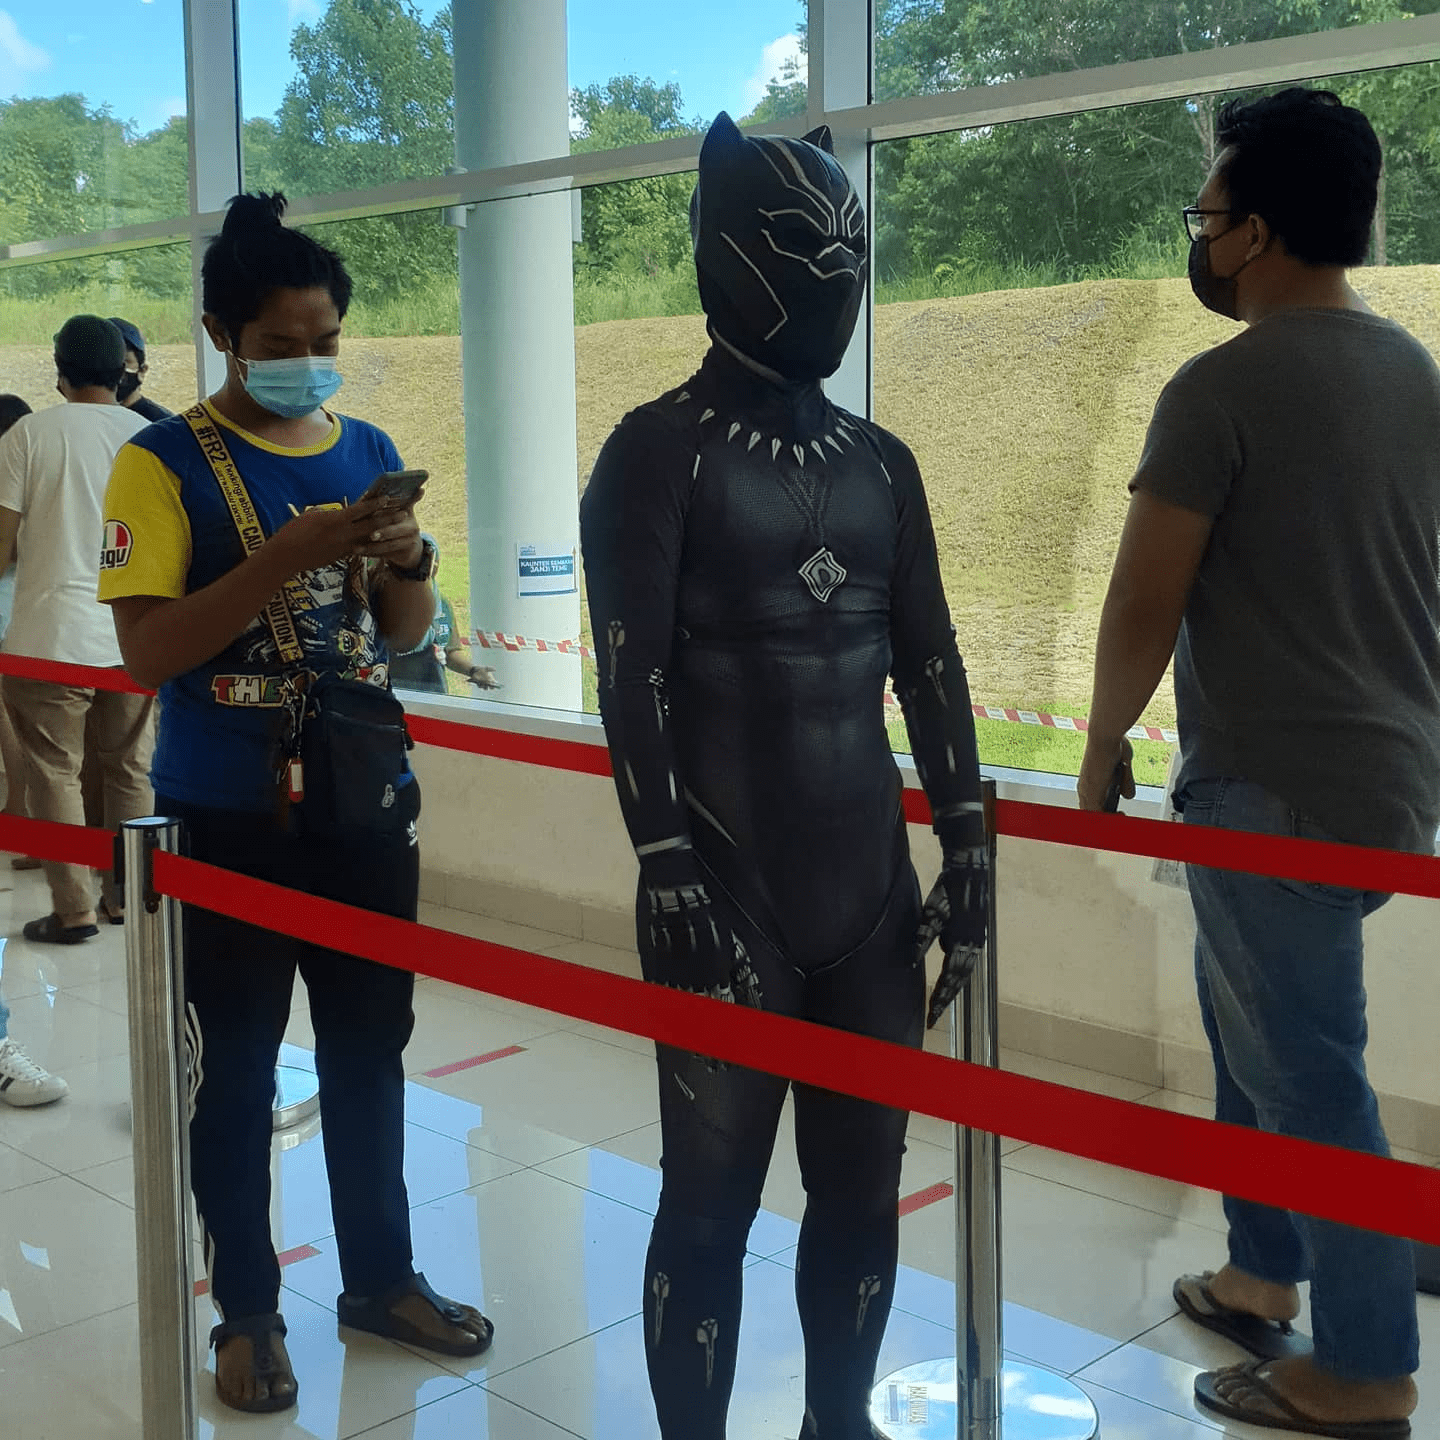 Malaysians wear costumes to vaccination - Black Panther